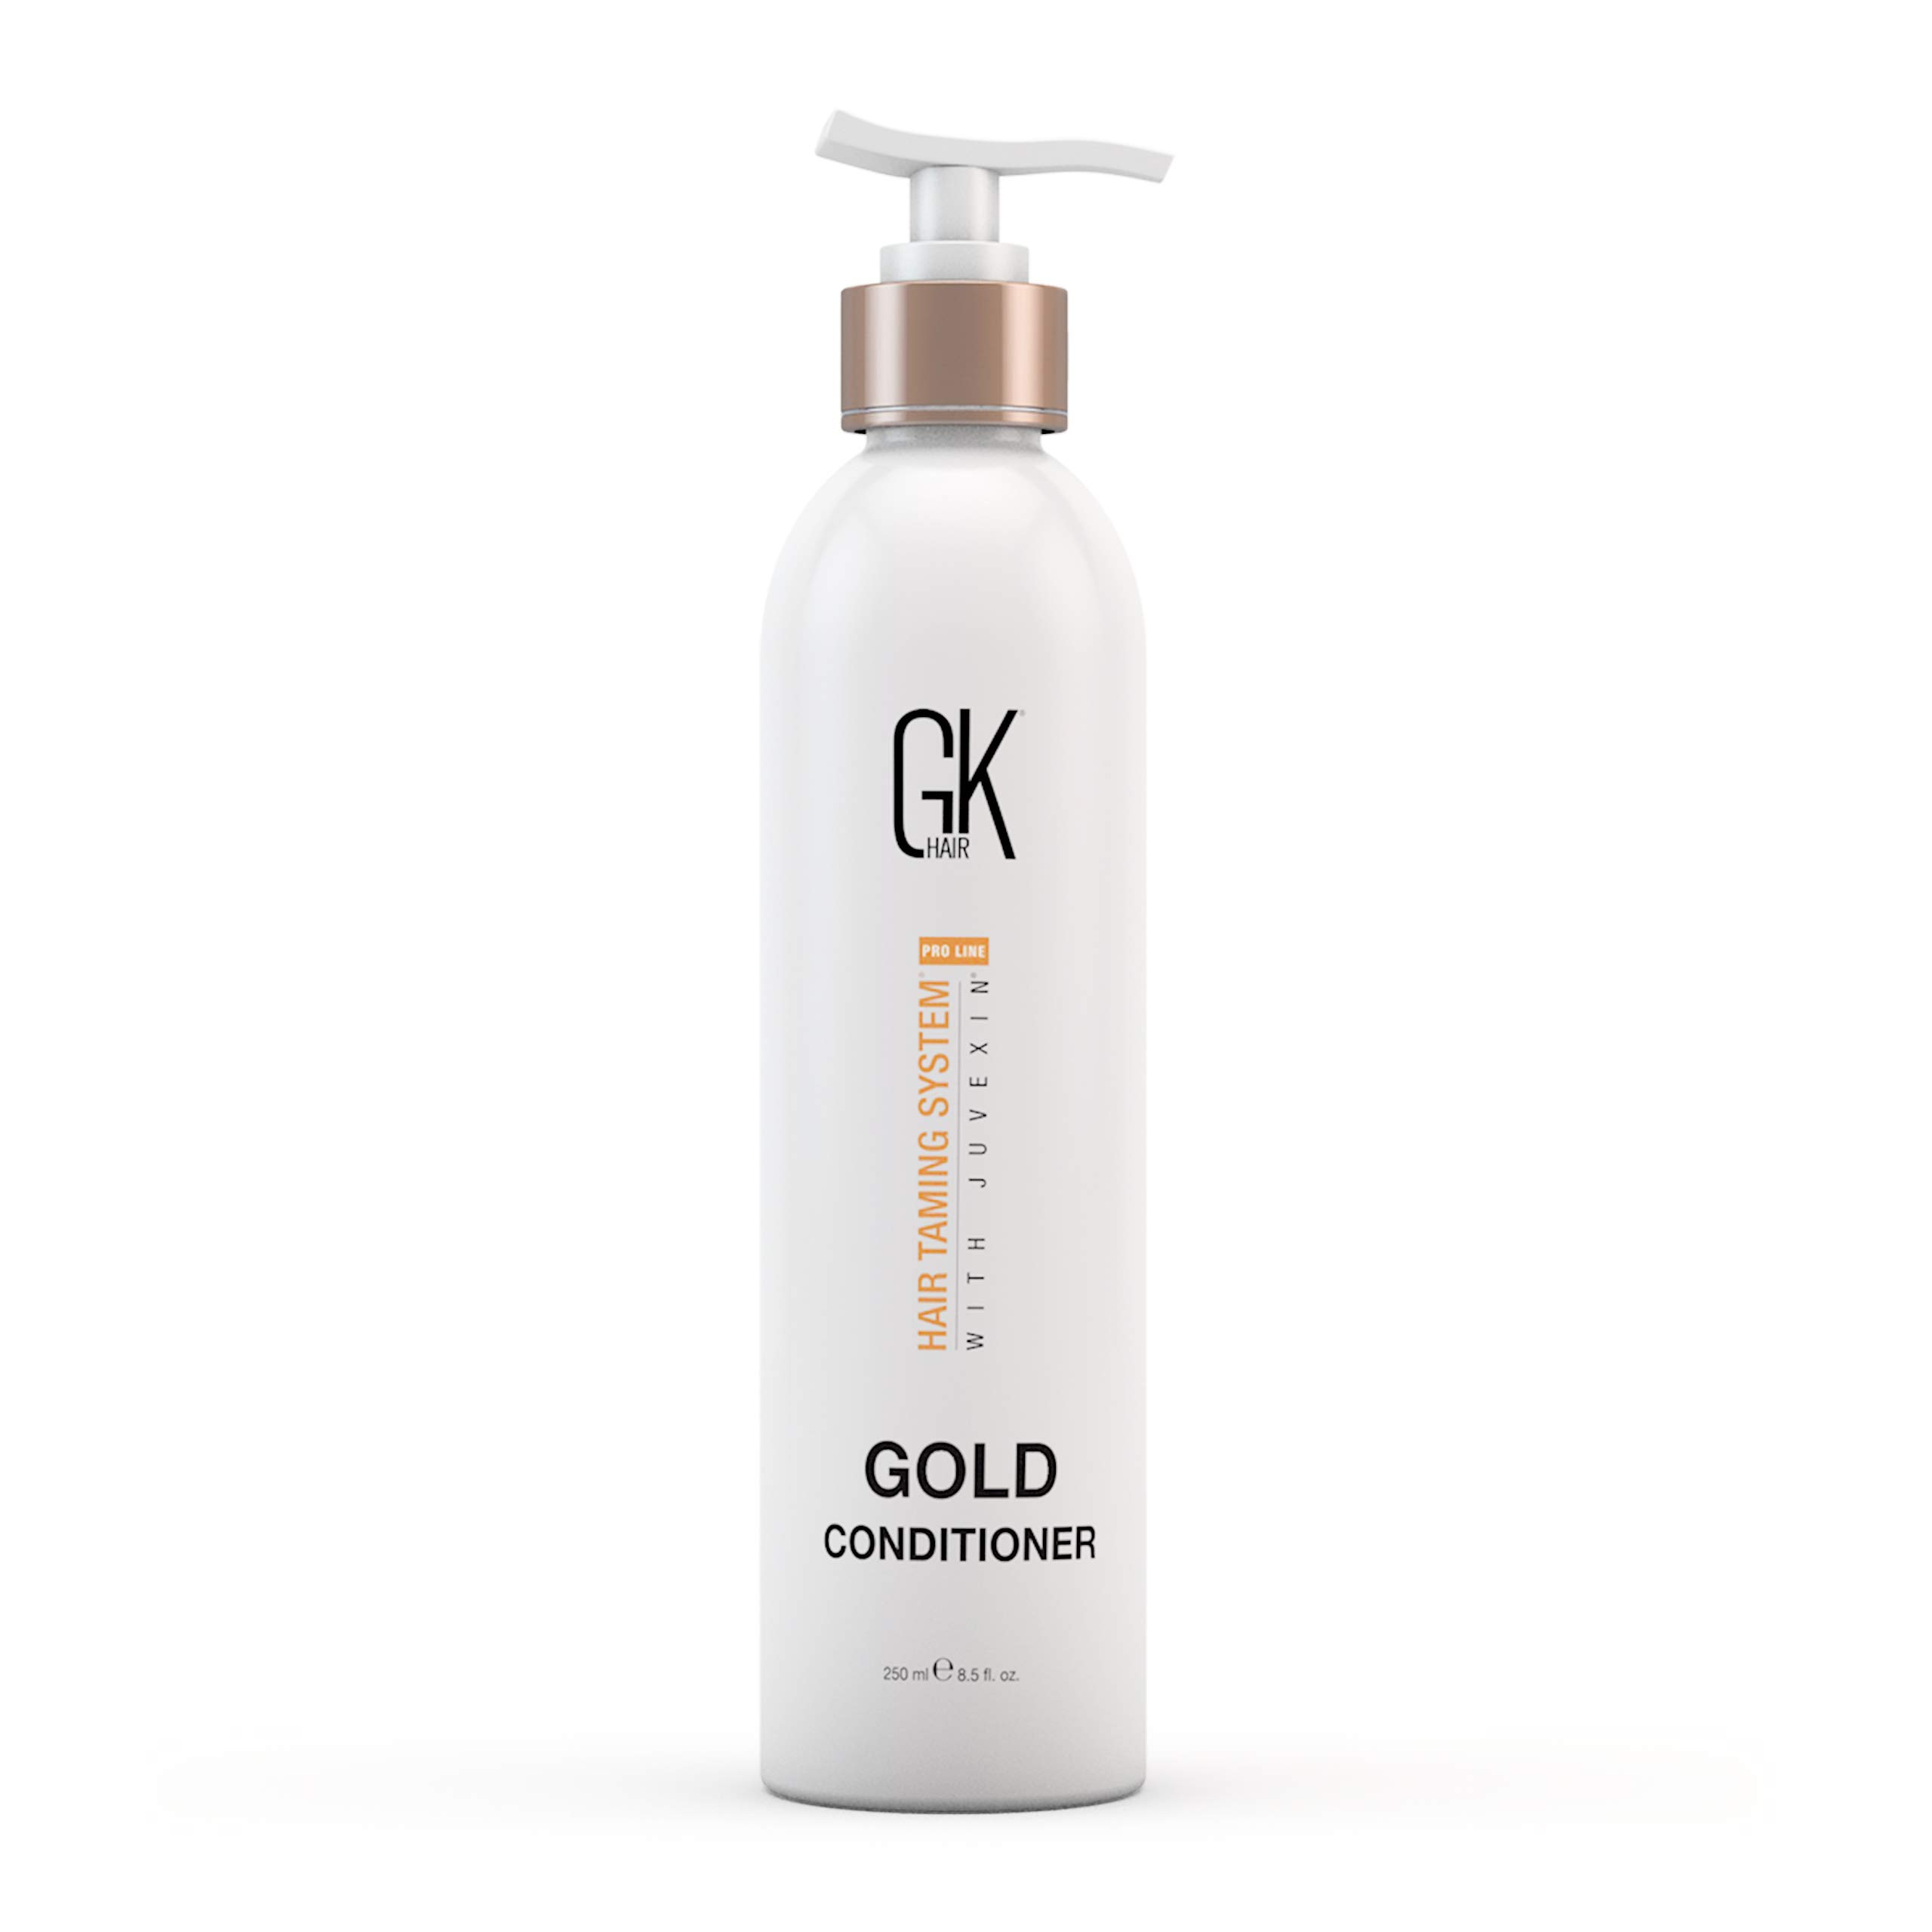 Global Keratin GKhair Gold Conditioner (250ml/ 8.5 fl. oz) | Hair Moisturizing/ Shine and Protection With Argan Oil, Shea Butter, Natural Oils | All Hair Types